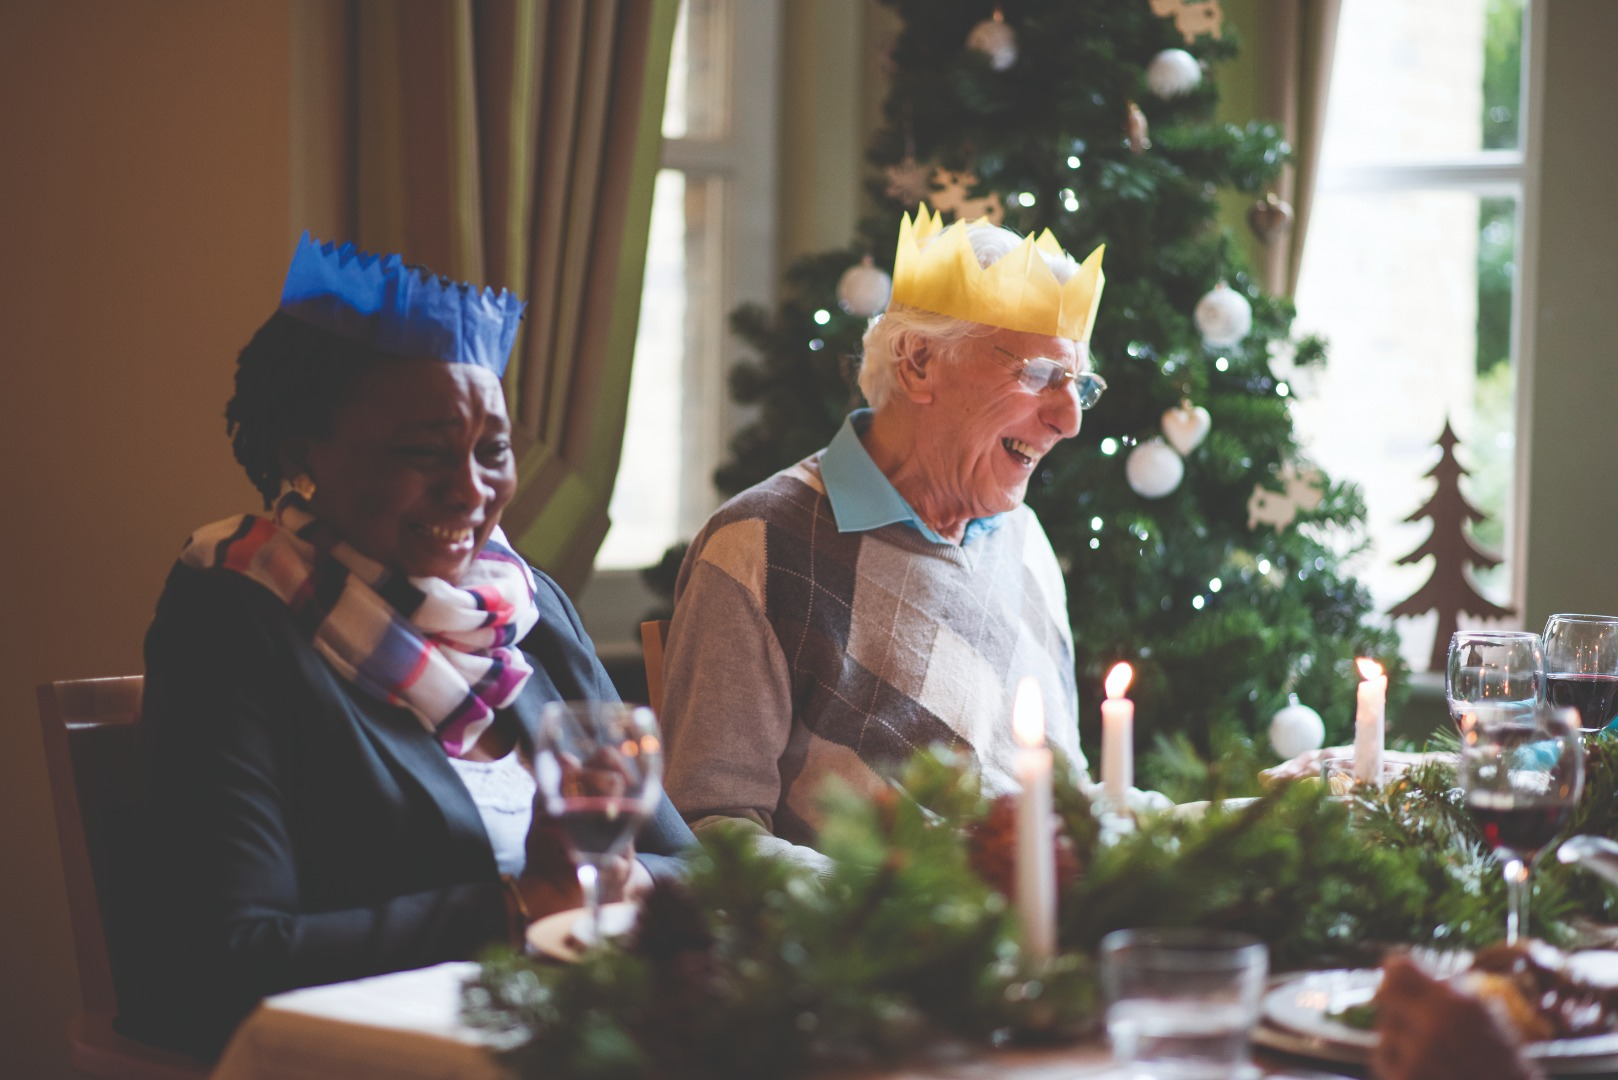 Care home invites elderly people facing Christmas Day alone to join them